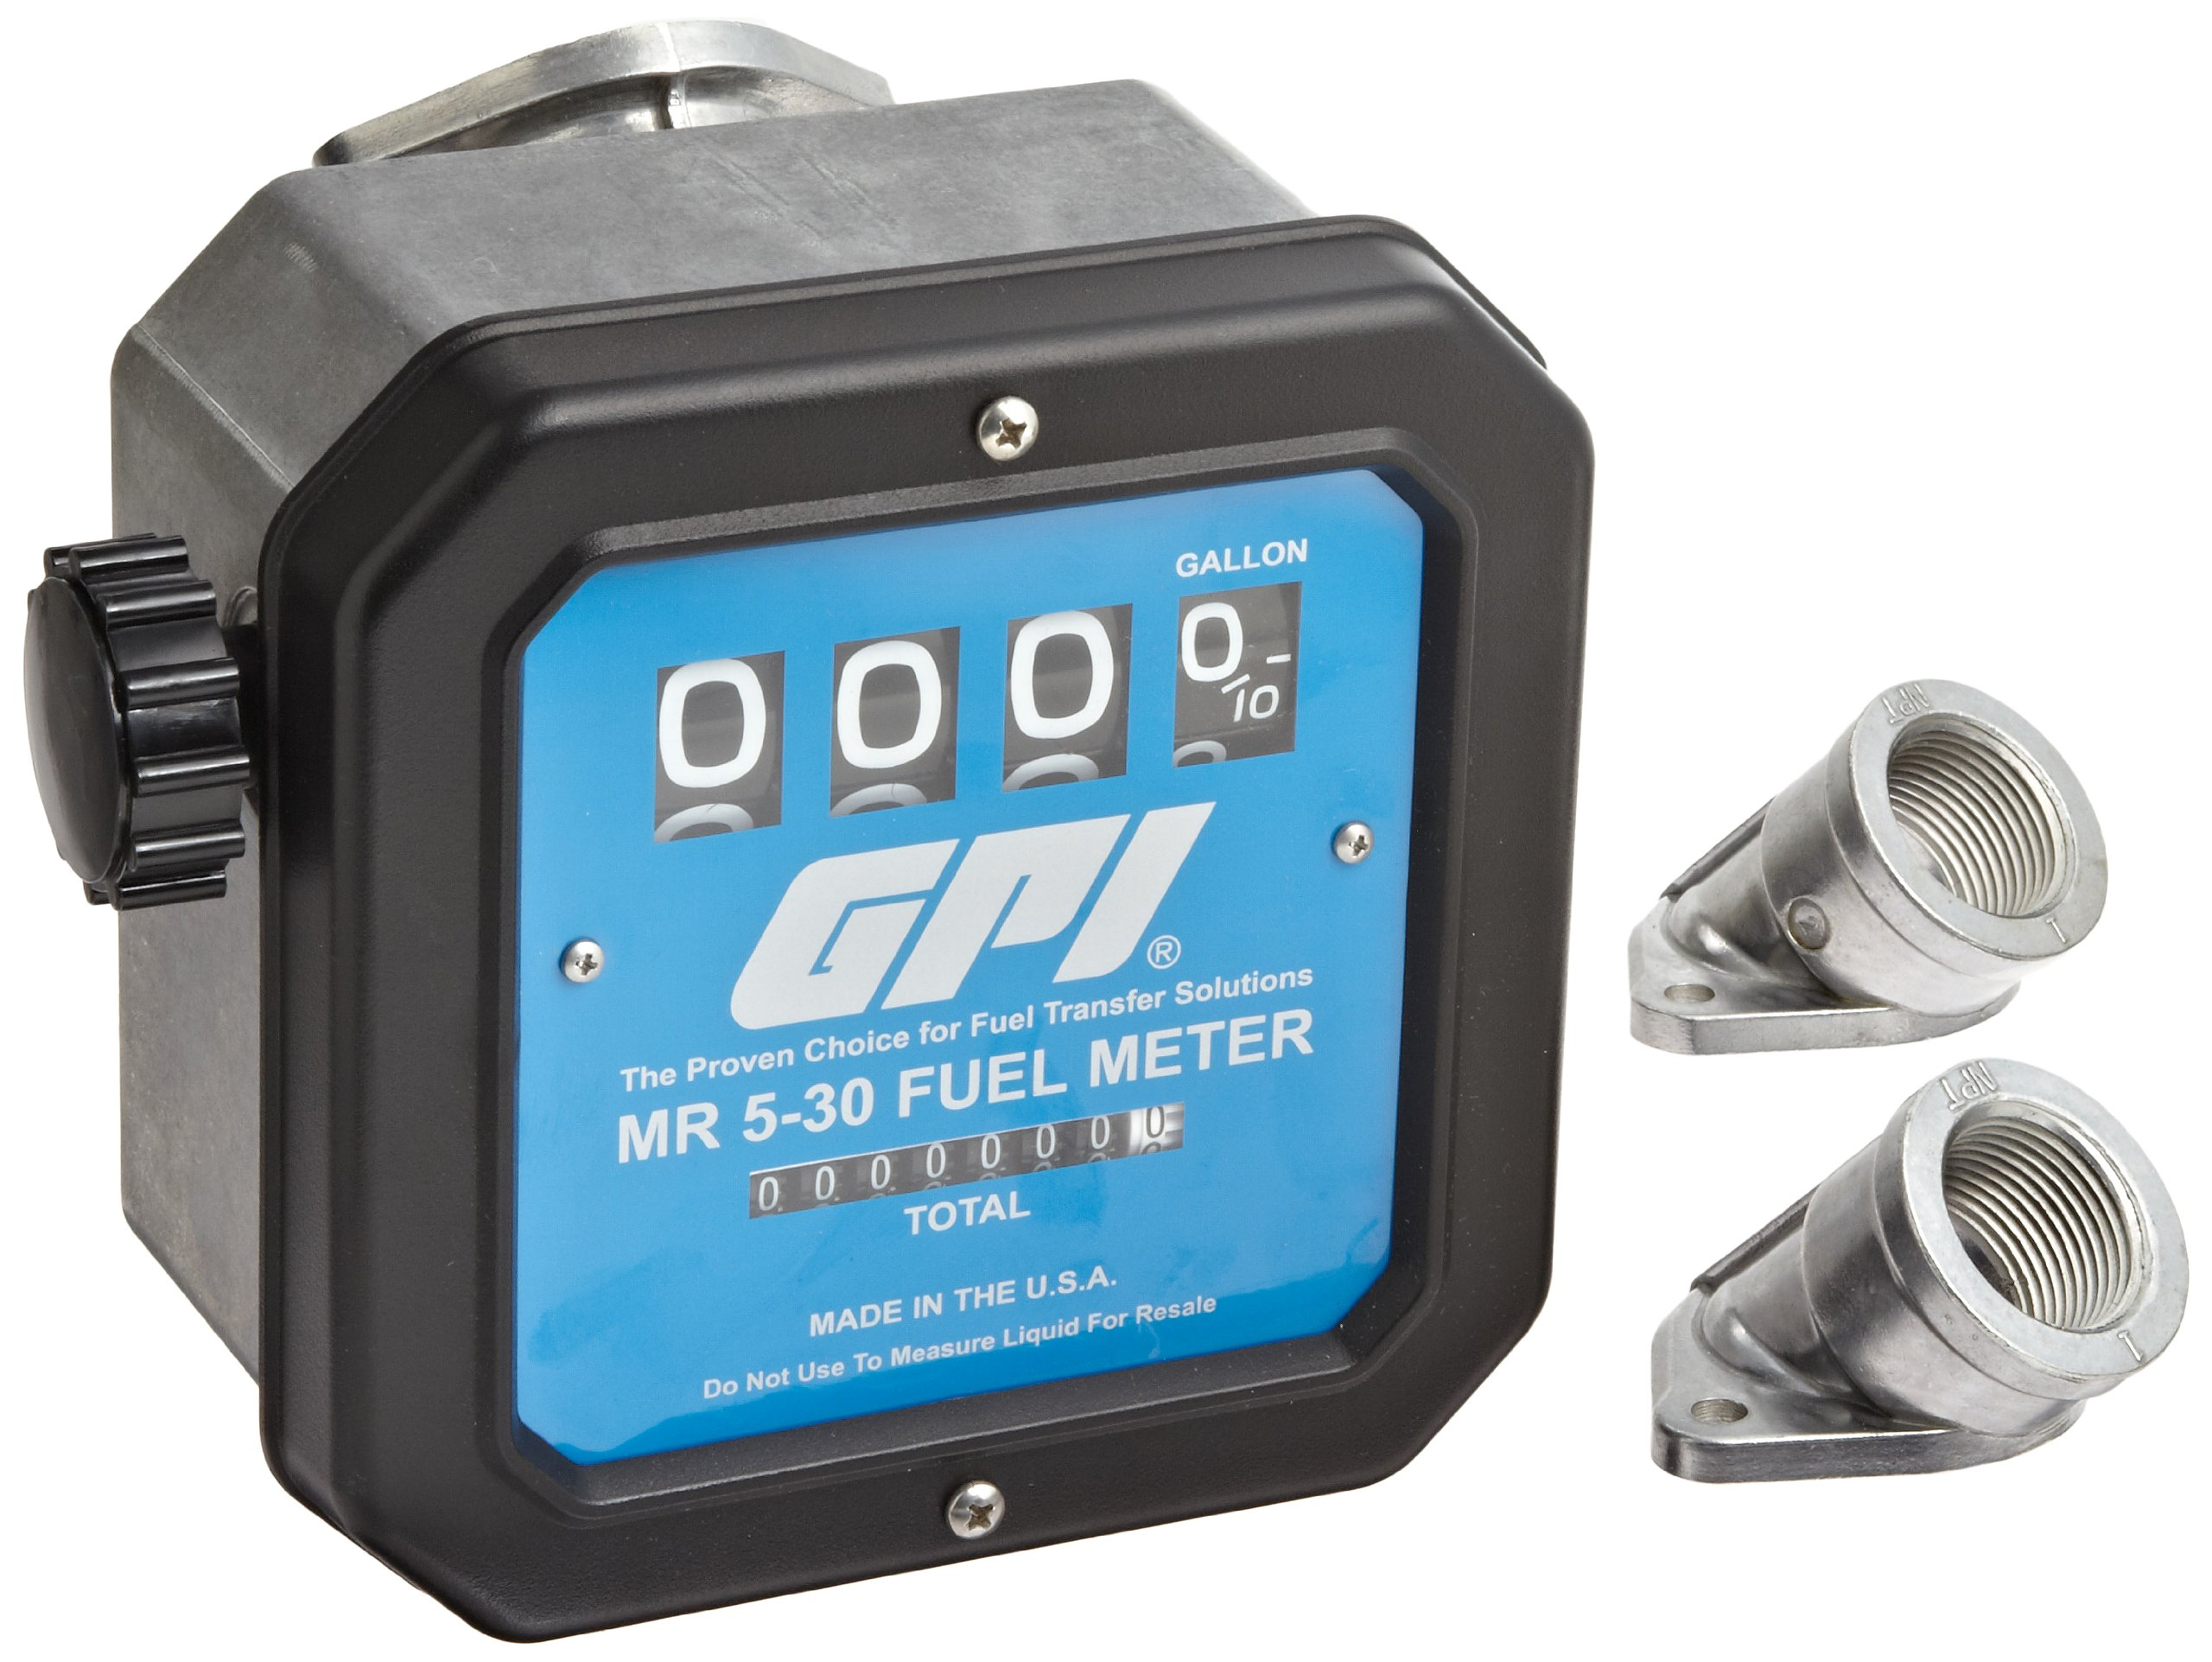 GPI 126300-03, MR530-G8N Mechanical Disk Fuel Flowmeter 1-Inch FNPT Inlet/Outlet, 5-30 GPM, 4-Digit Batch Display, Non-Resettable Cumulative Total, +/-2 Percent Accuracy